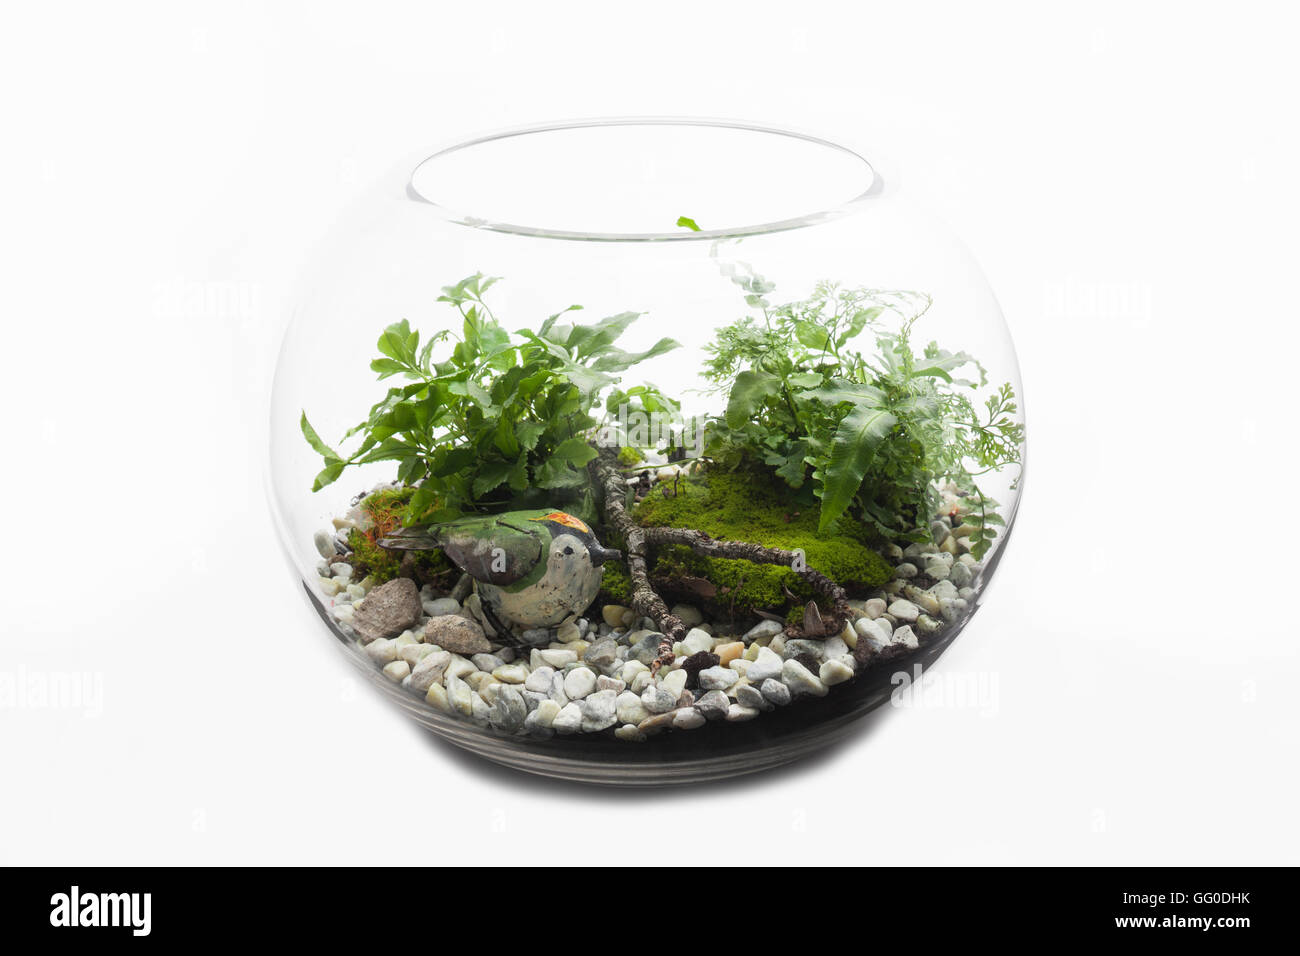 Glass Terrarium Bowl Of Australian Ferns Moss And Rocks With A Toy